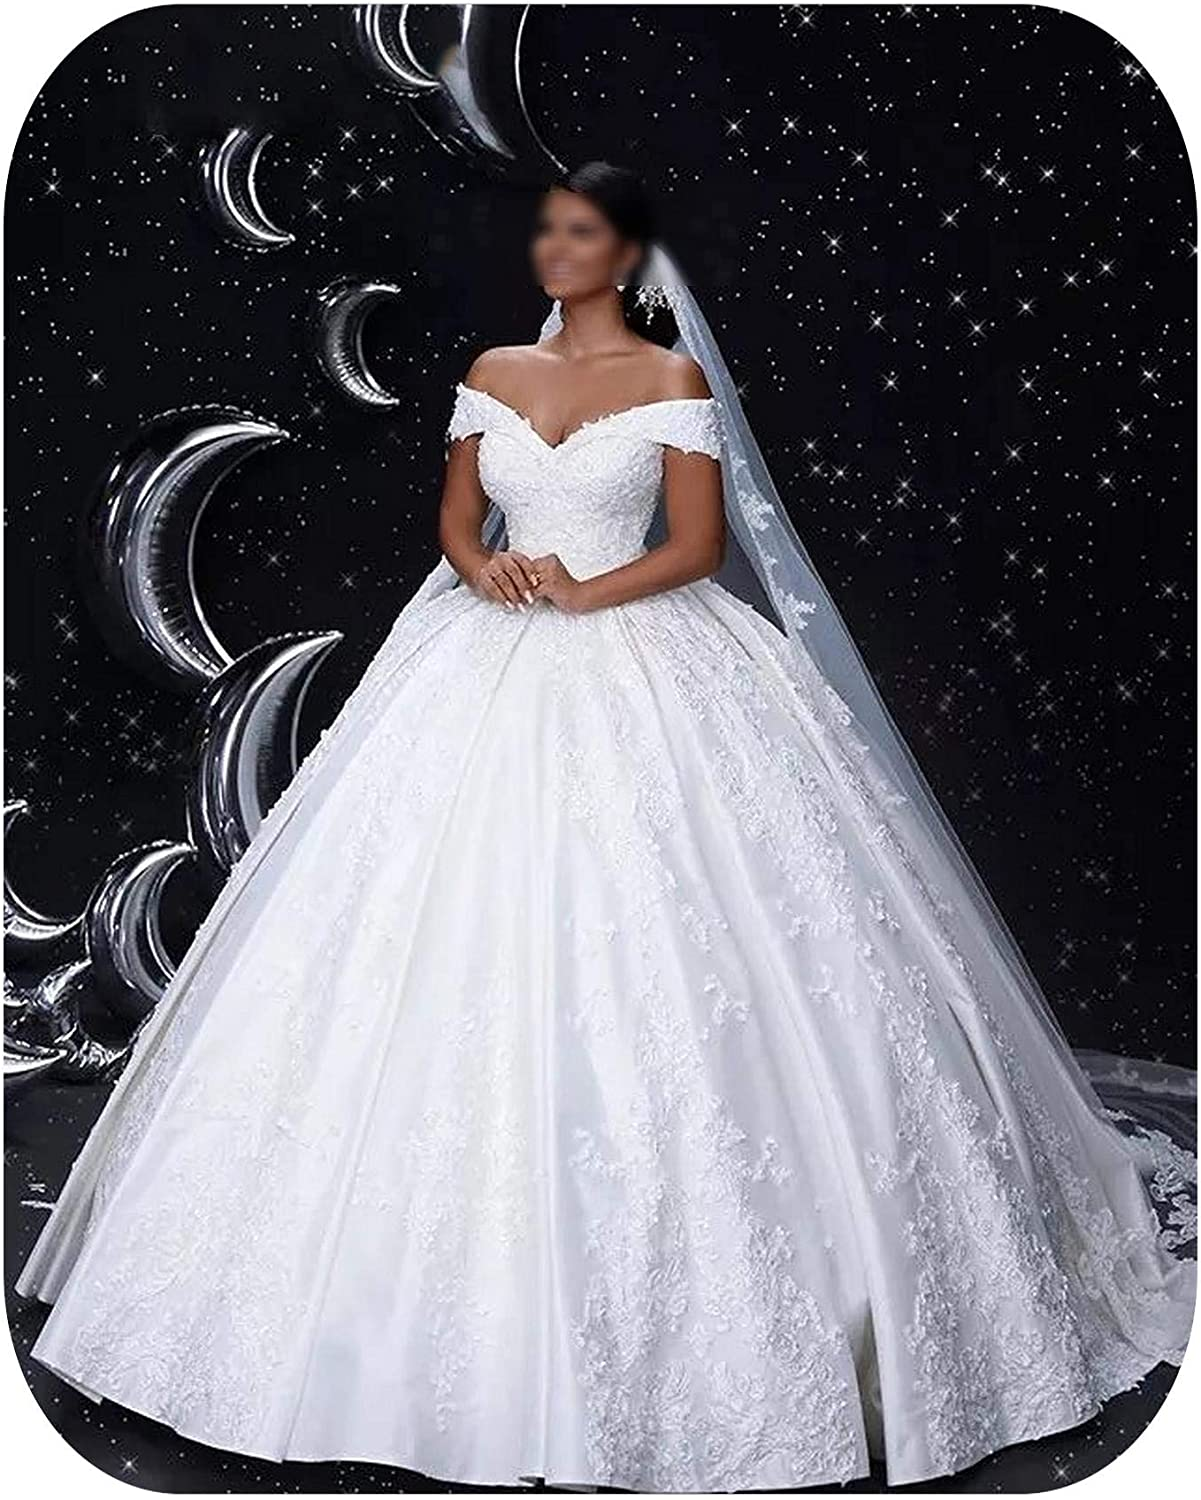 Amazon Com Cinderella V Neck The Shoulder Lace Up Back Applique Crystal Beaded Satin Ball Gown Wedding Dresses Ivory 2 China 50cm Clothing,Cost Of Wedding Dress Preservation